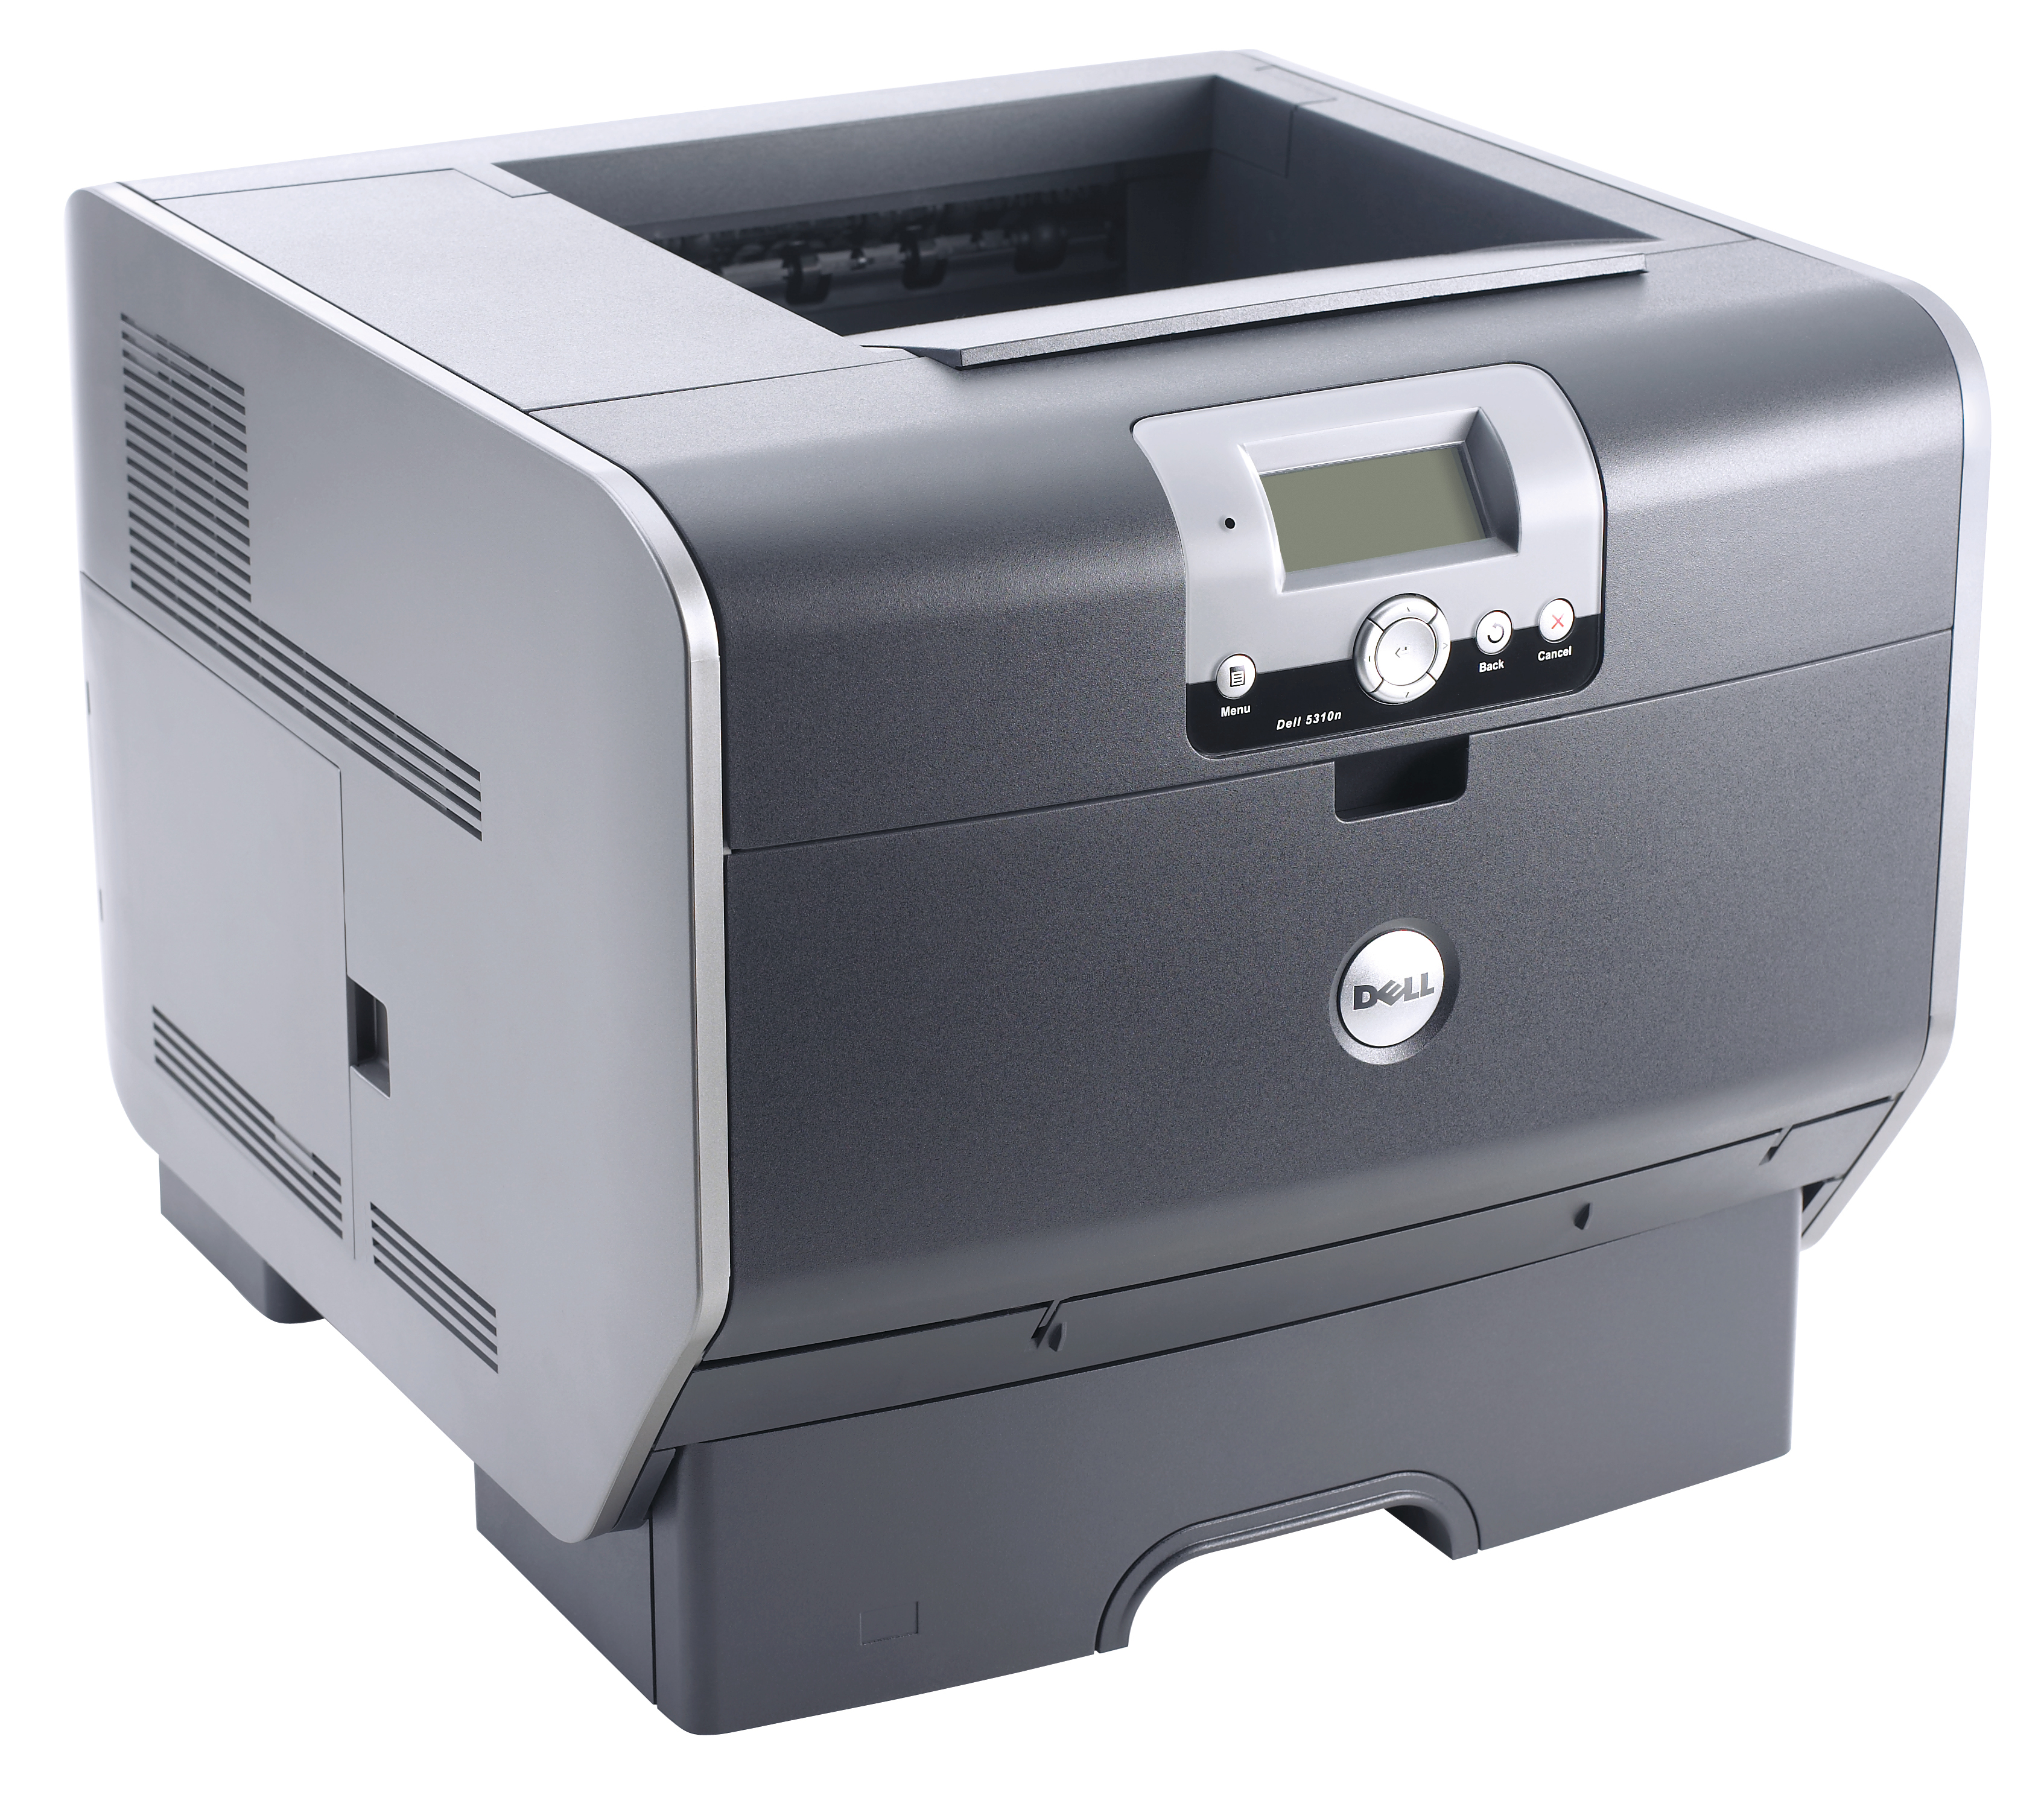 Dell 5310N Printer 5310N - Refurbished